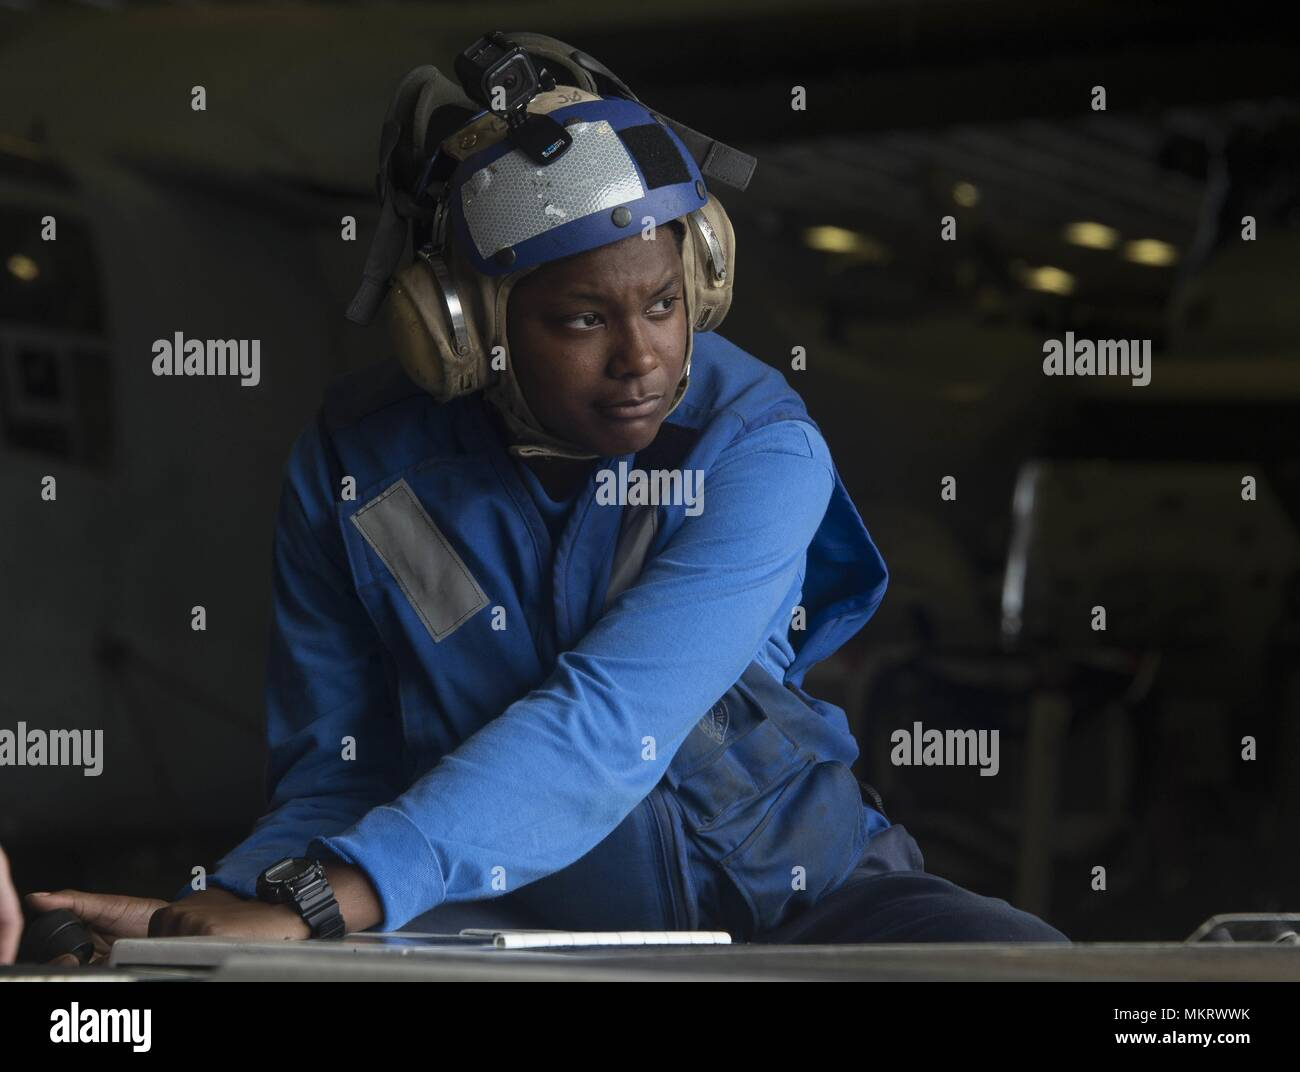 180507-N-AH771-0021 U.S. 5TH FLEET AREA OF OPERATIONS (May 7, 2018) Aviation Boatswain's Mate (Handling) Airman Khalyne Jones, from Marshall, Texas, drives an AS-32A spotting dolly in the hangar bay aboard the Wasp-class amphibious assault ship USS Iwo Jima (LHD 7), May 7, 2018, May 7, 2018. Iwo Jima, homeported in Mayport, Fla. is on deployment to the U.S. 5th Fleet area of operations in support of maritime security operations to reassure allies and partners, and preserve the freedom of navigation and the free flow of commerce in the region. (U.S. Navy photo by Mass Communication Specialist 3 Stock Photo